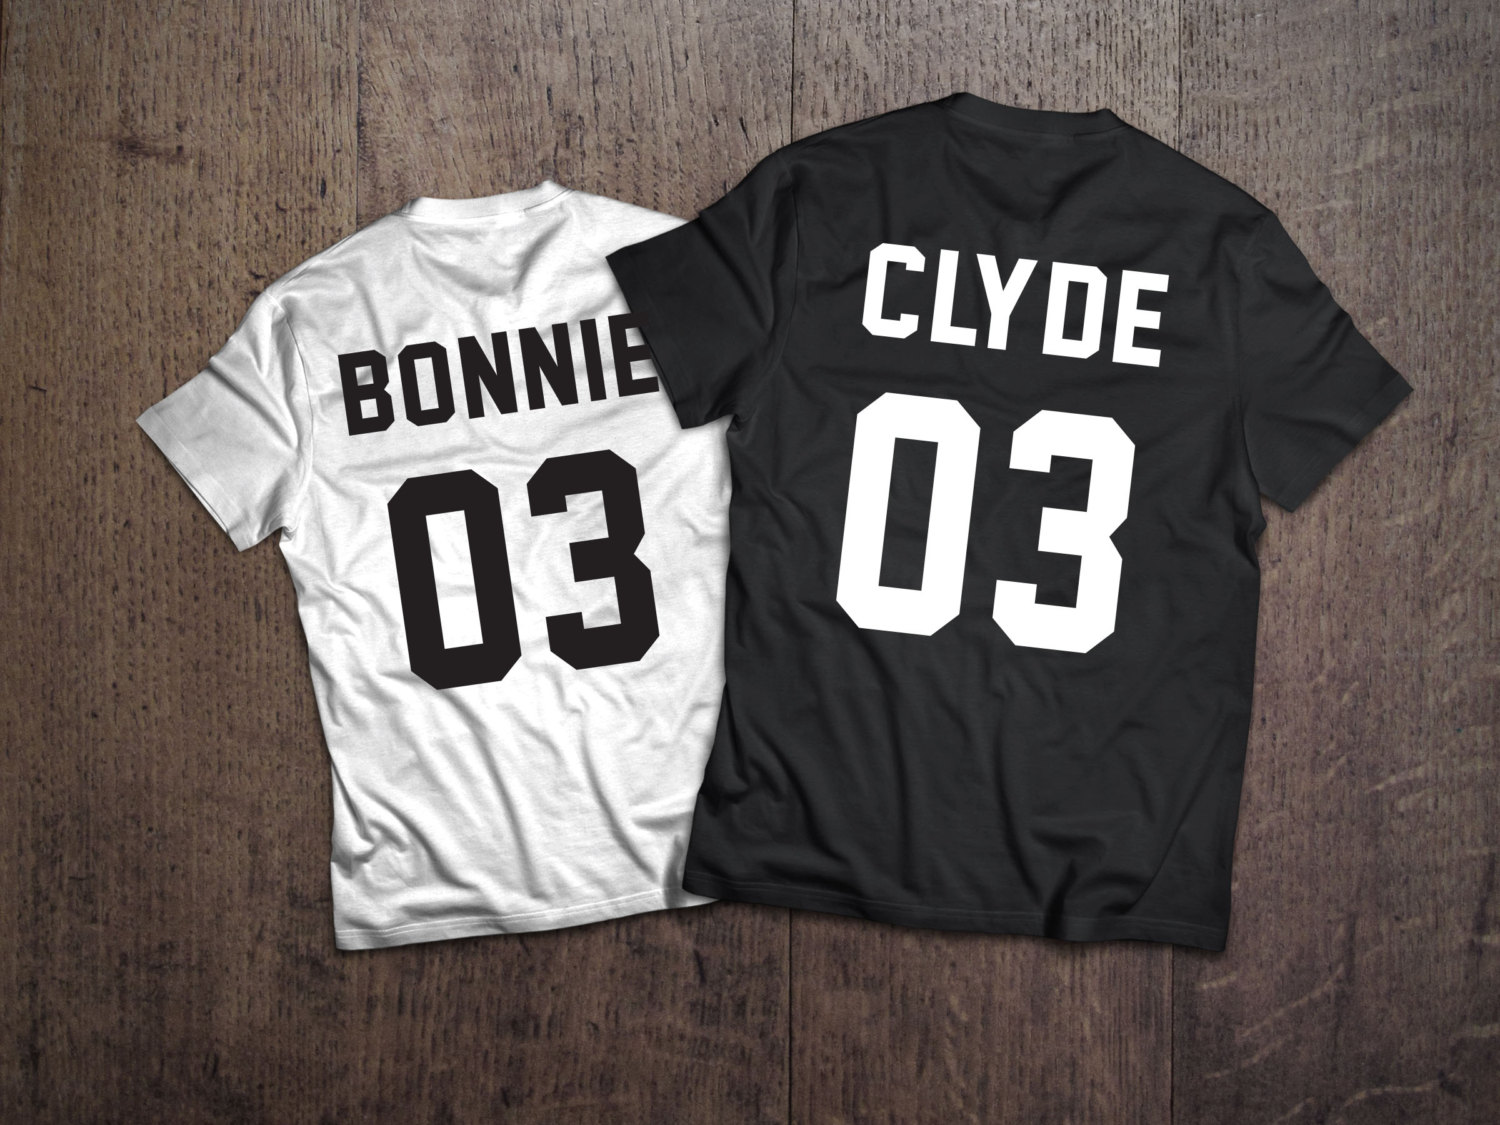 3943373ff couple t-shirts BONNIE CLYDE, shirts, couple, match shirts, wifey ...